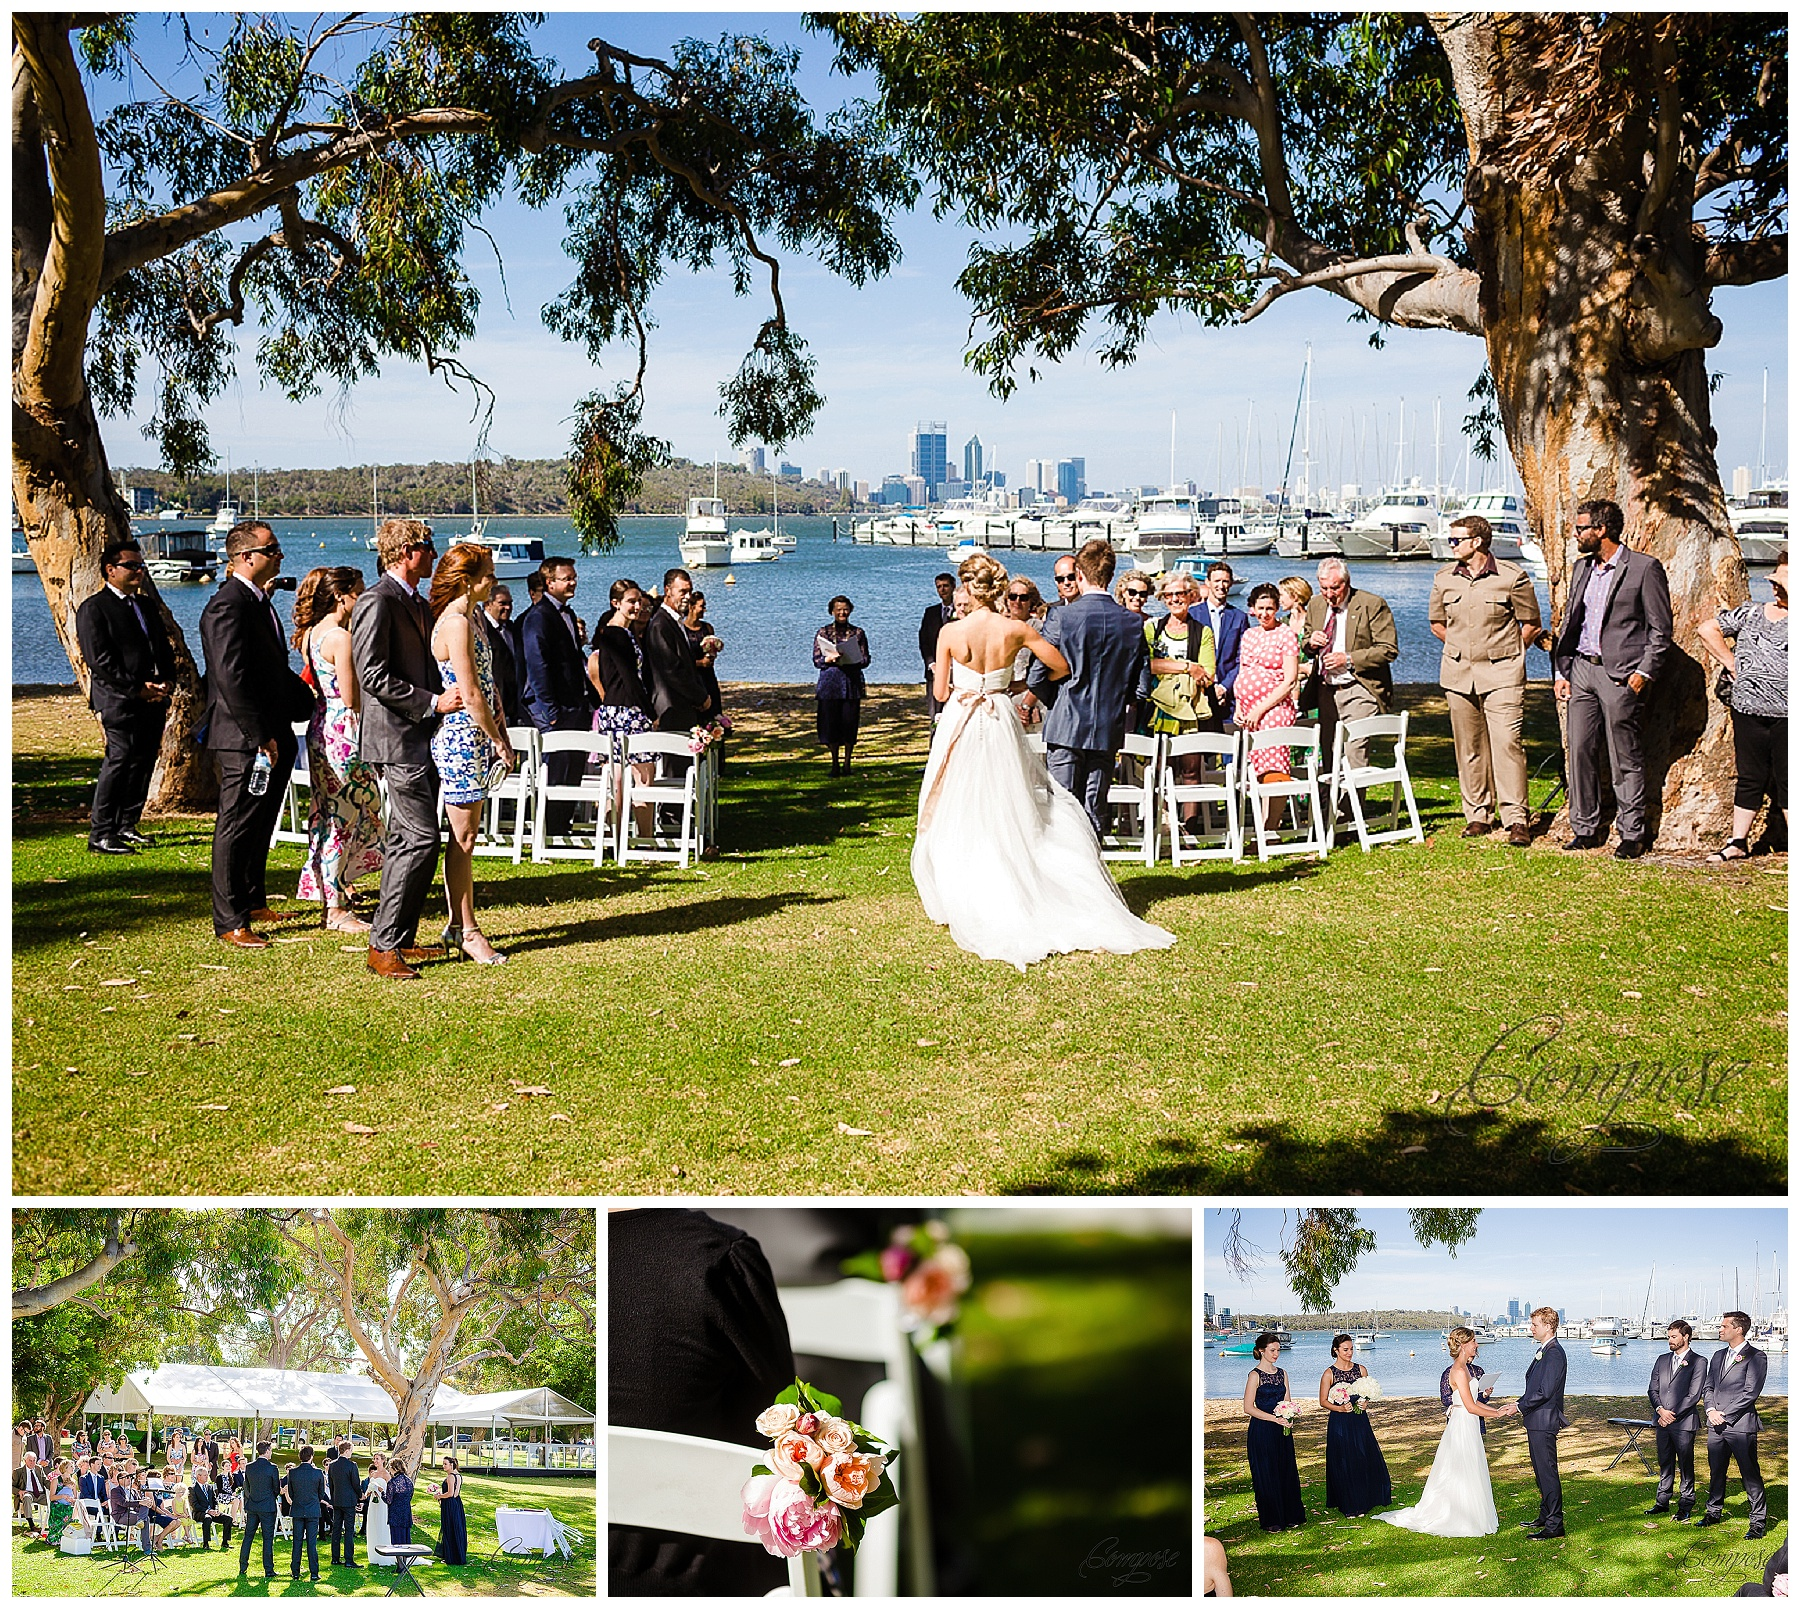 swan river wedding ceremony location